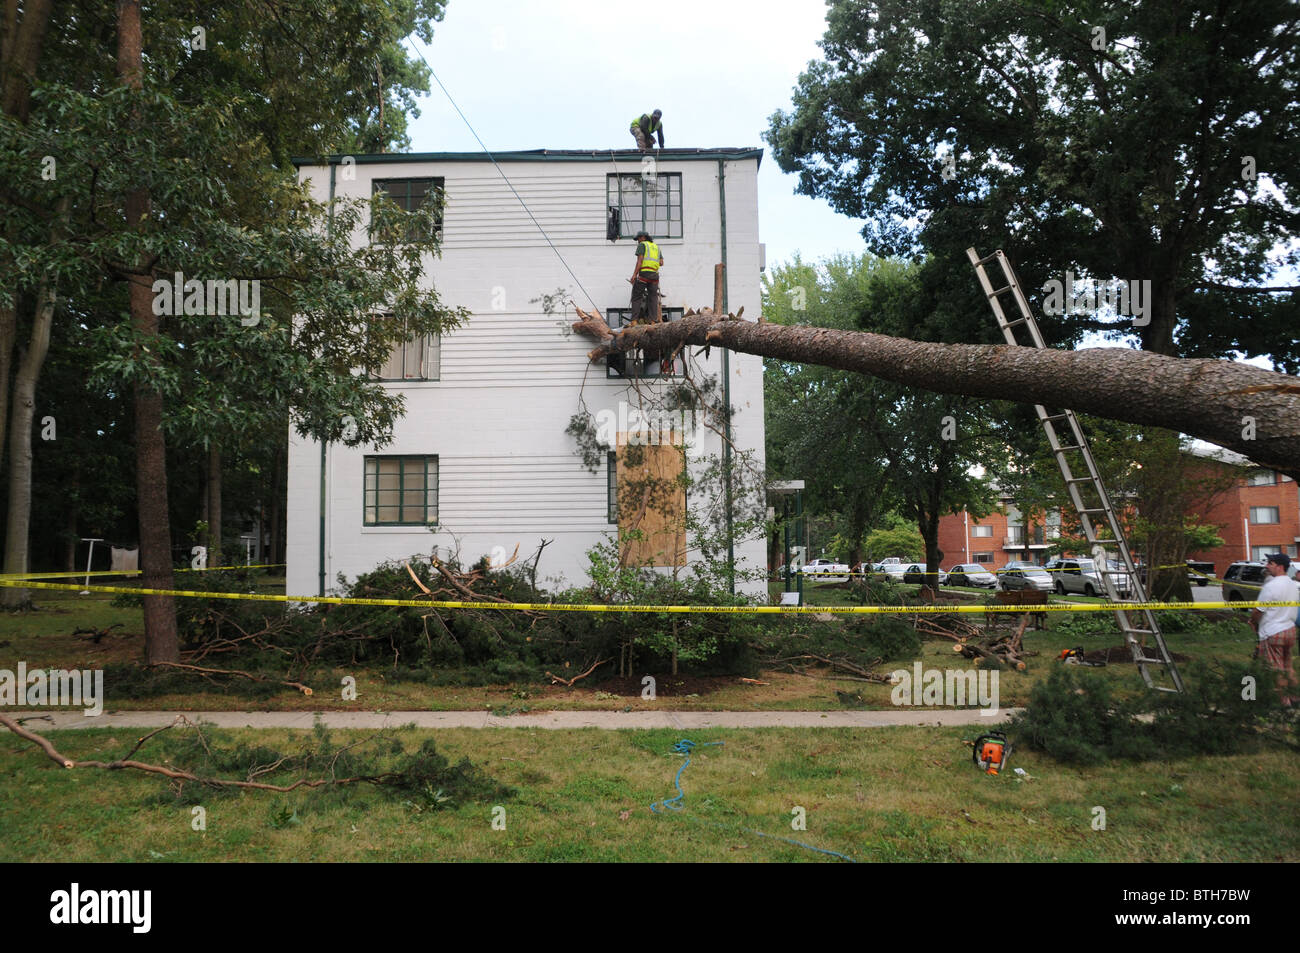 Tree crashed into an apartment building in Greenbelt, Maryland - Stock Image